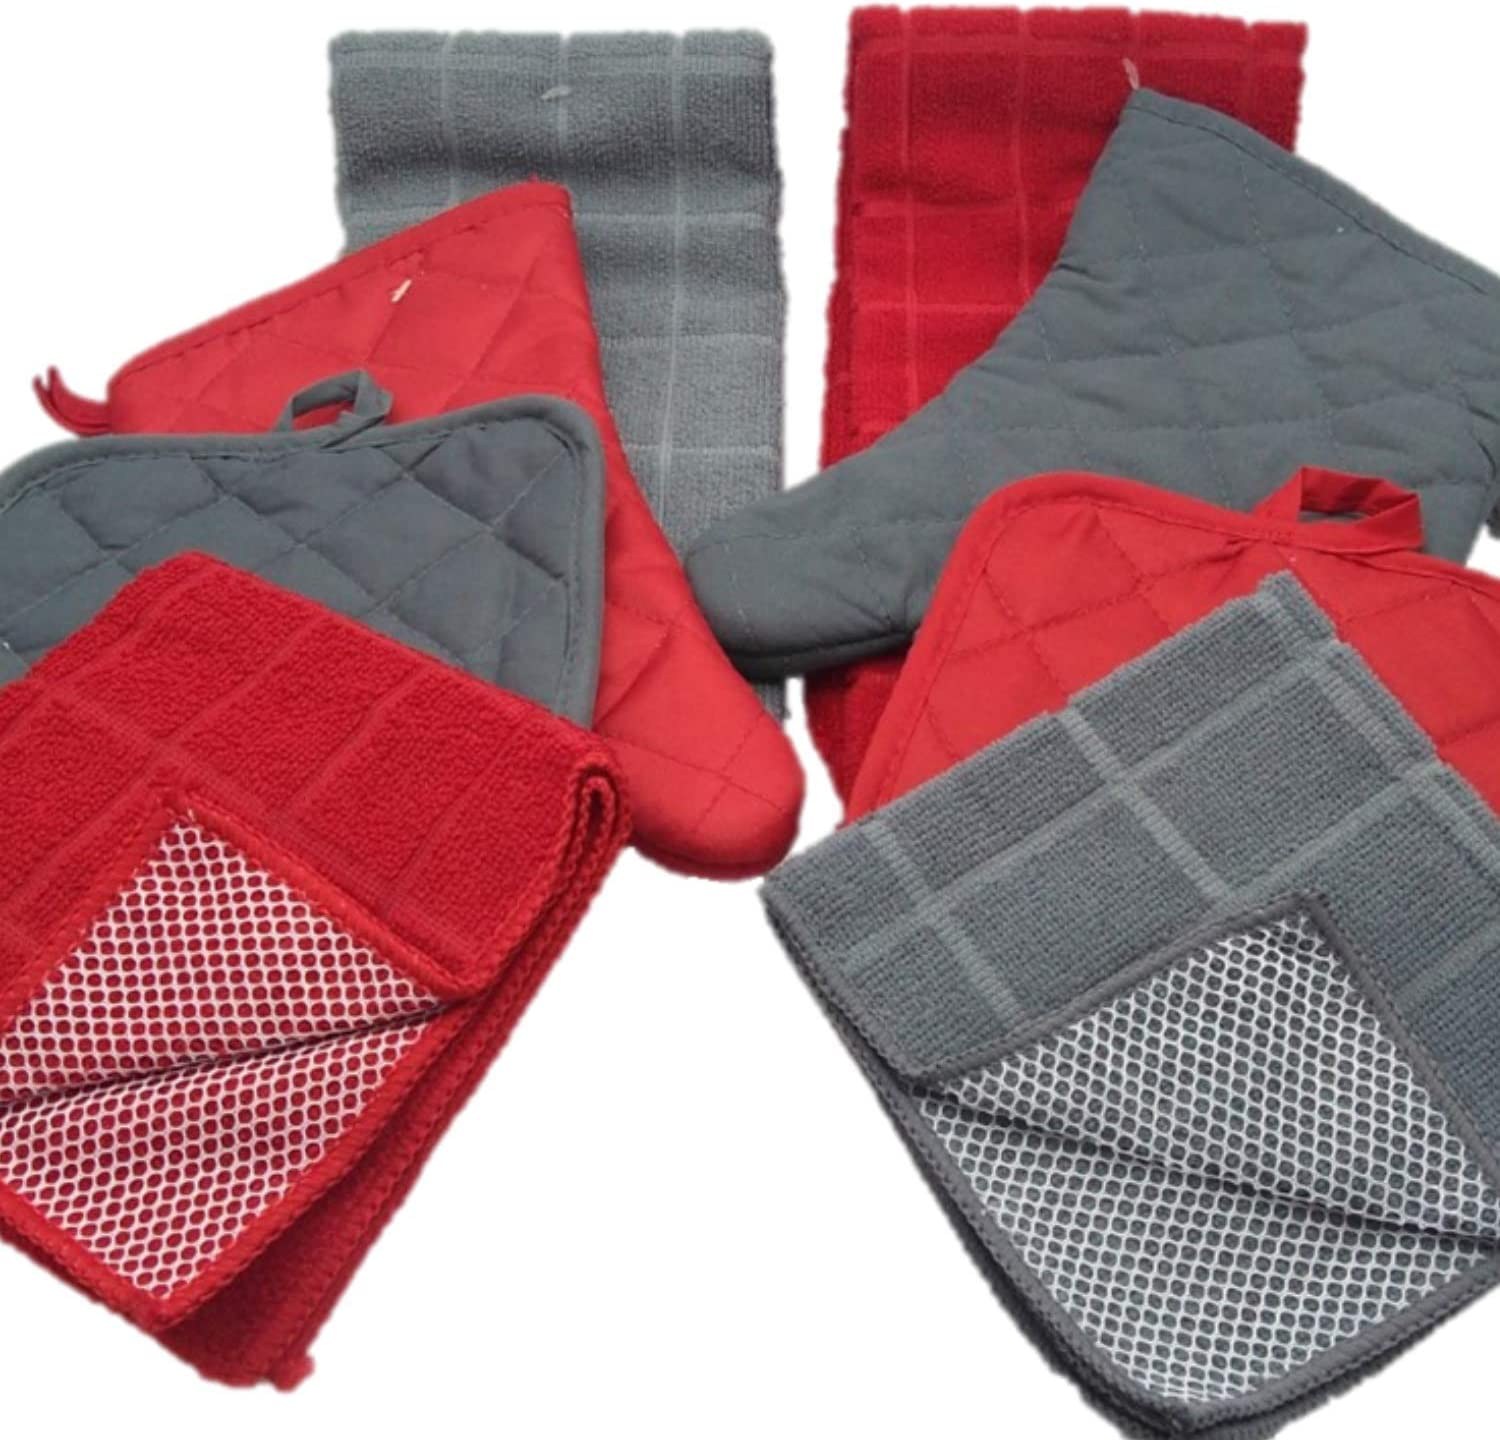 Kitchen Decor - Towel Linen Set (8 Pc) Fresh Red and Gray Color Combination That Pops - Kitchen Towel Potholder Scrubber Dishcloth Oven Mitt Set - Kitchen Decorations